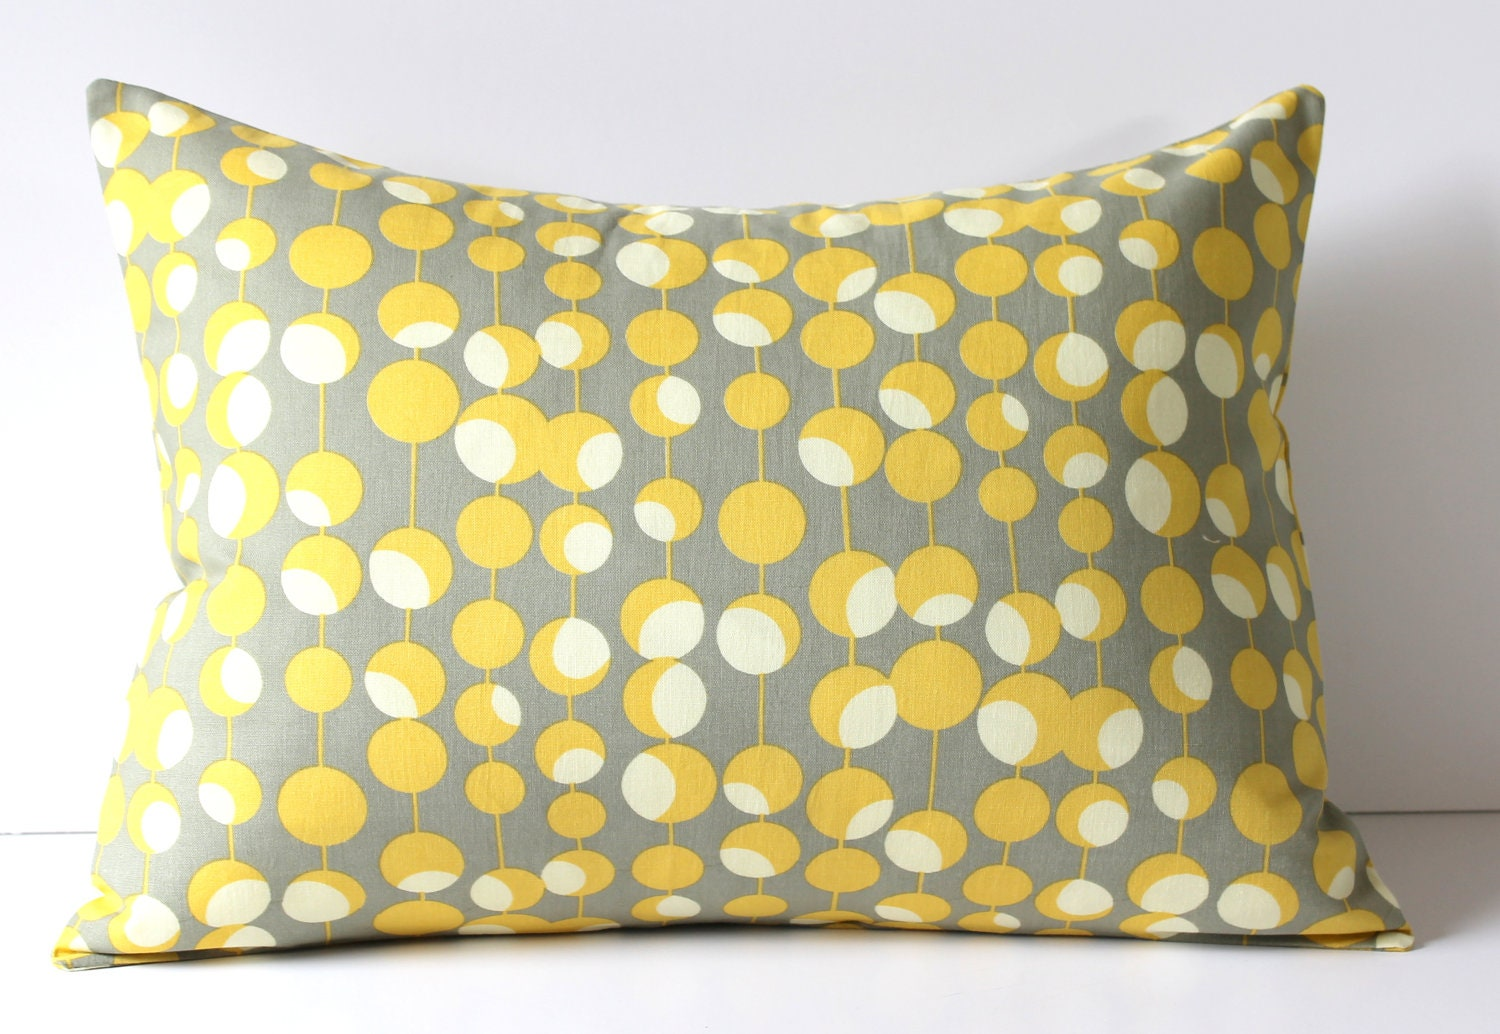 Decorative Pillow Cover Gray & Mustard Yellow Martini Dots